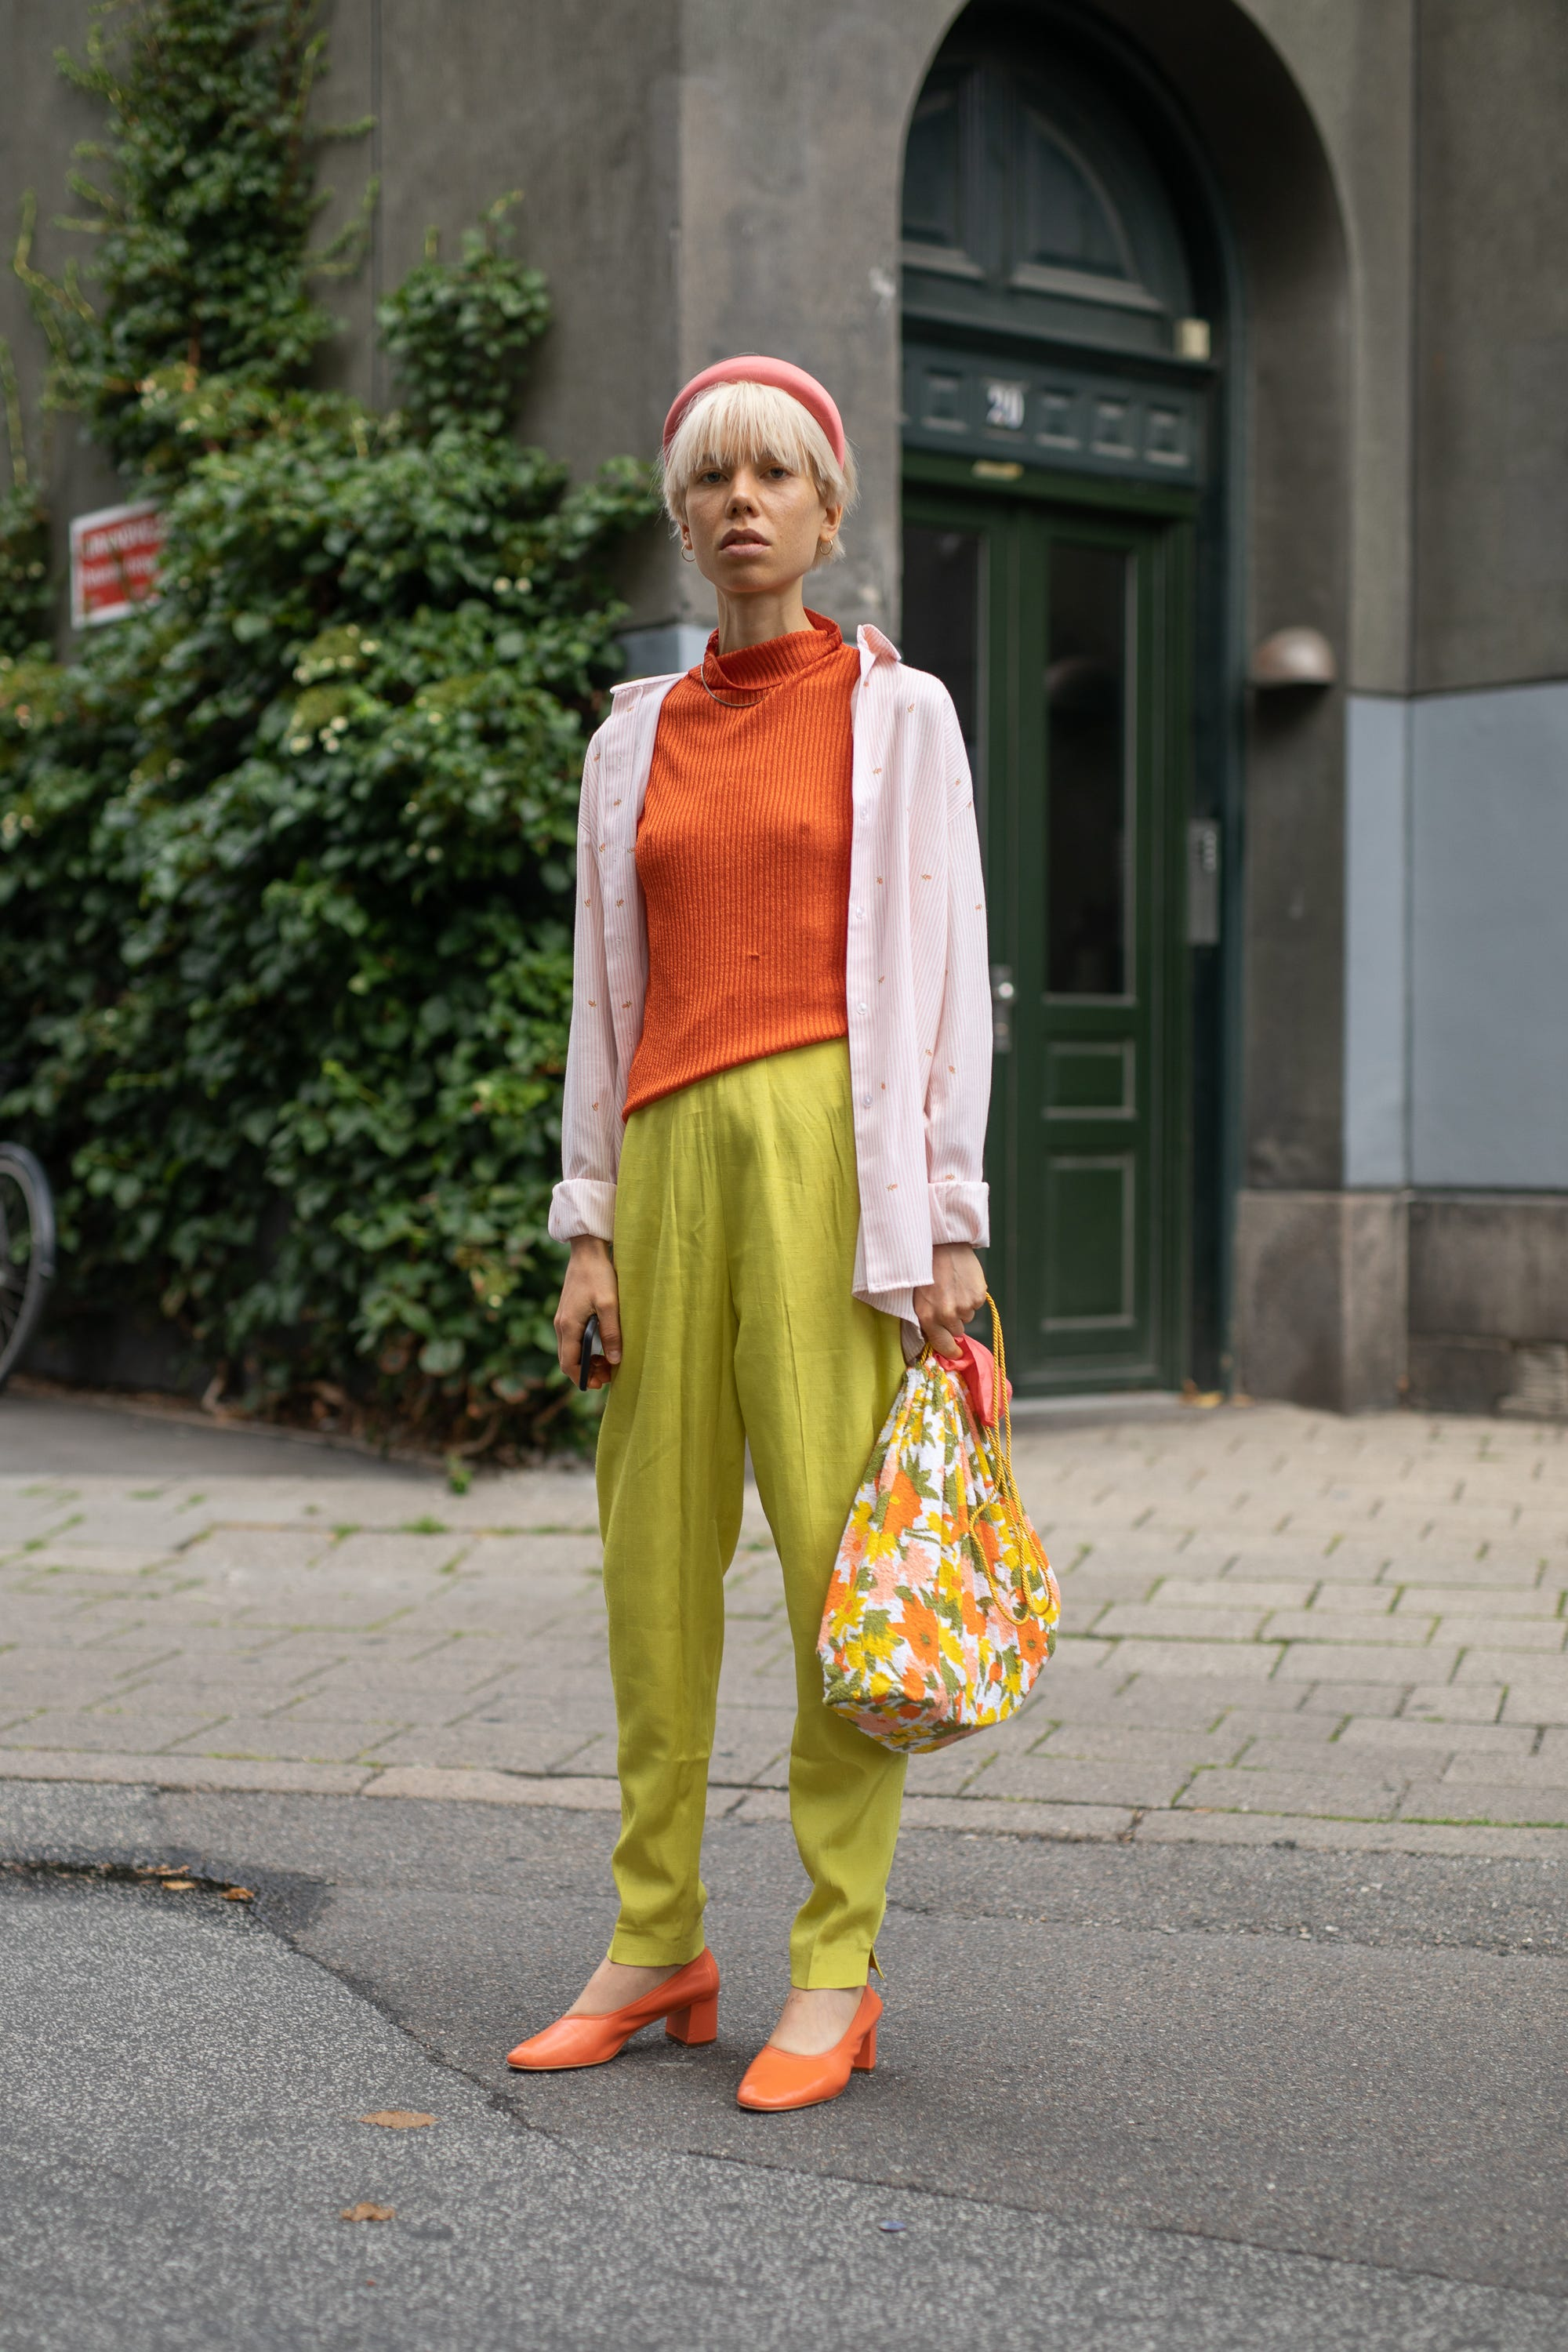 Image result for copenhagen fashion week street style tangerine lime